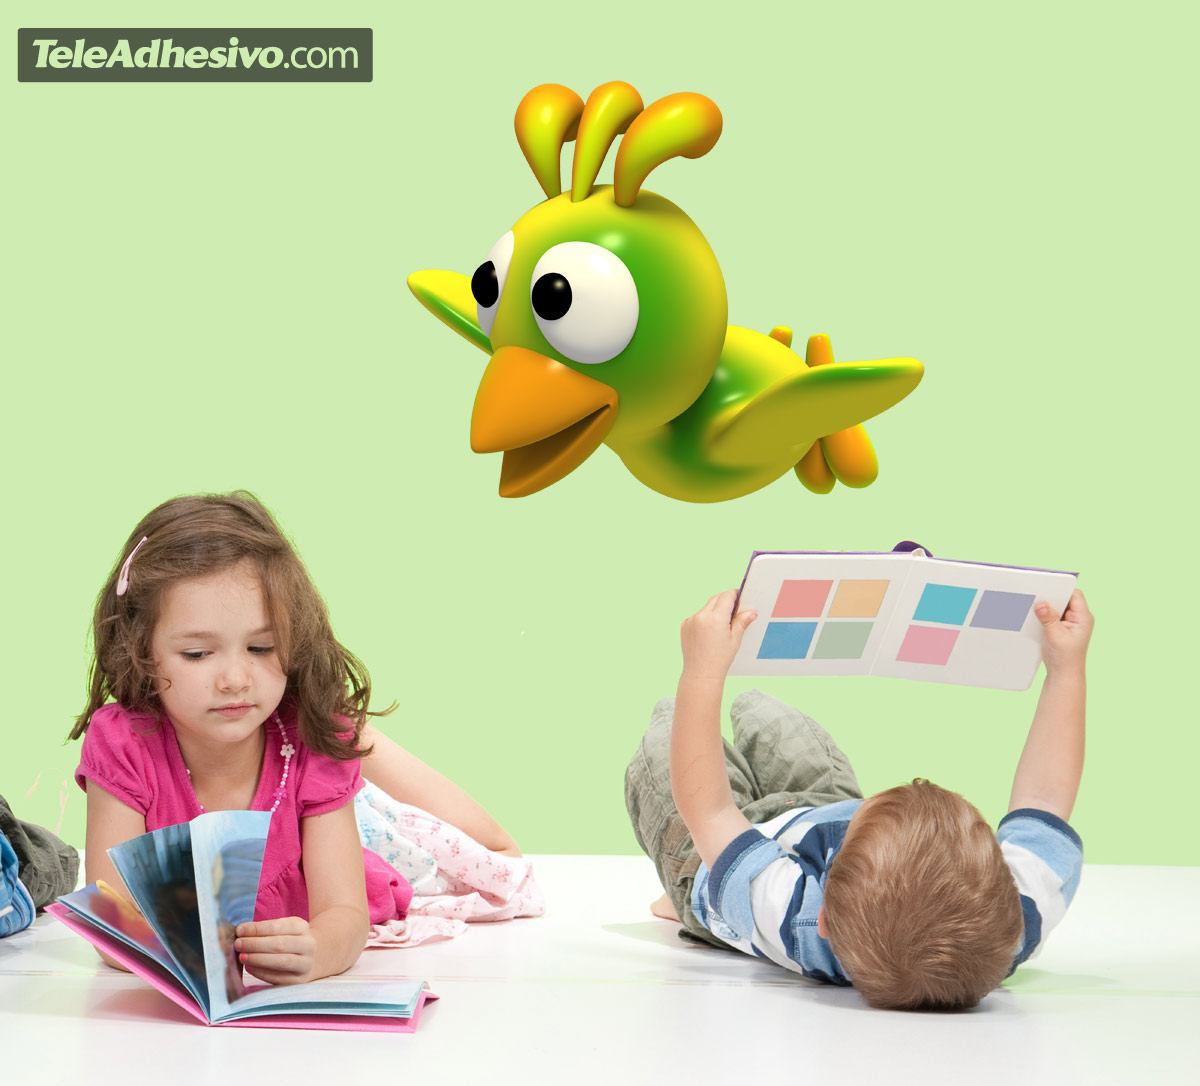 Stickers for Kids: Yellow bird flying